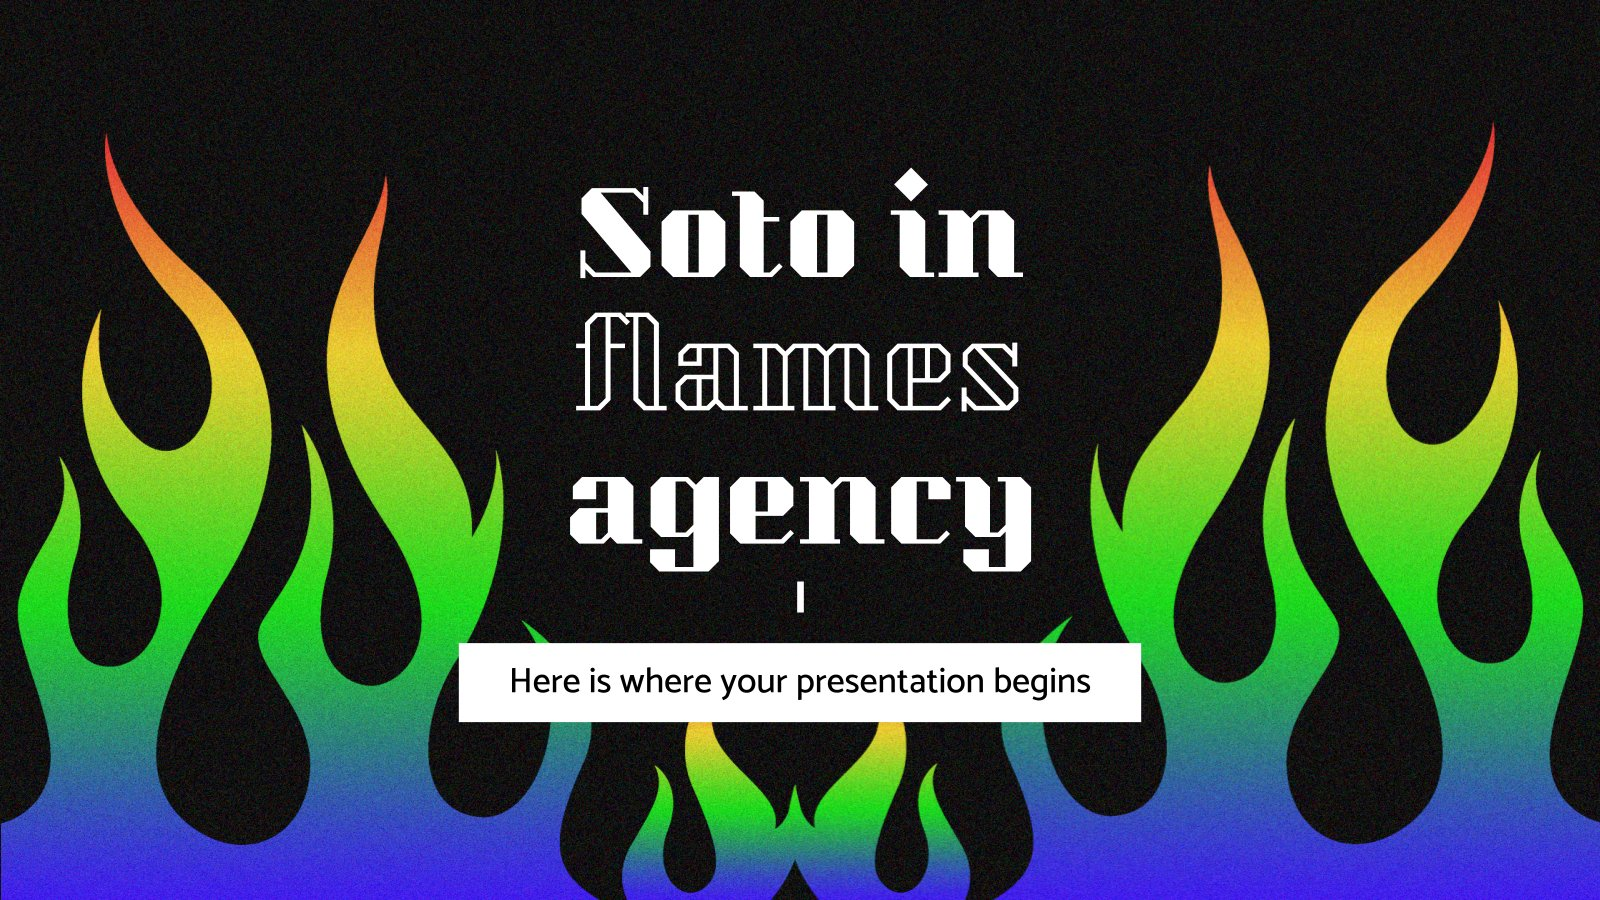 Soto in Flames Agency presentation template